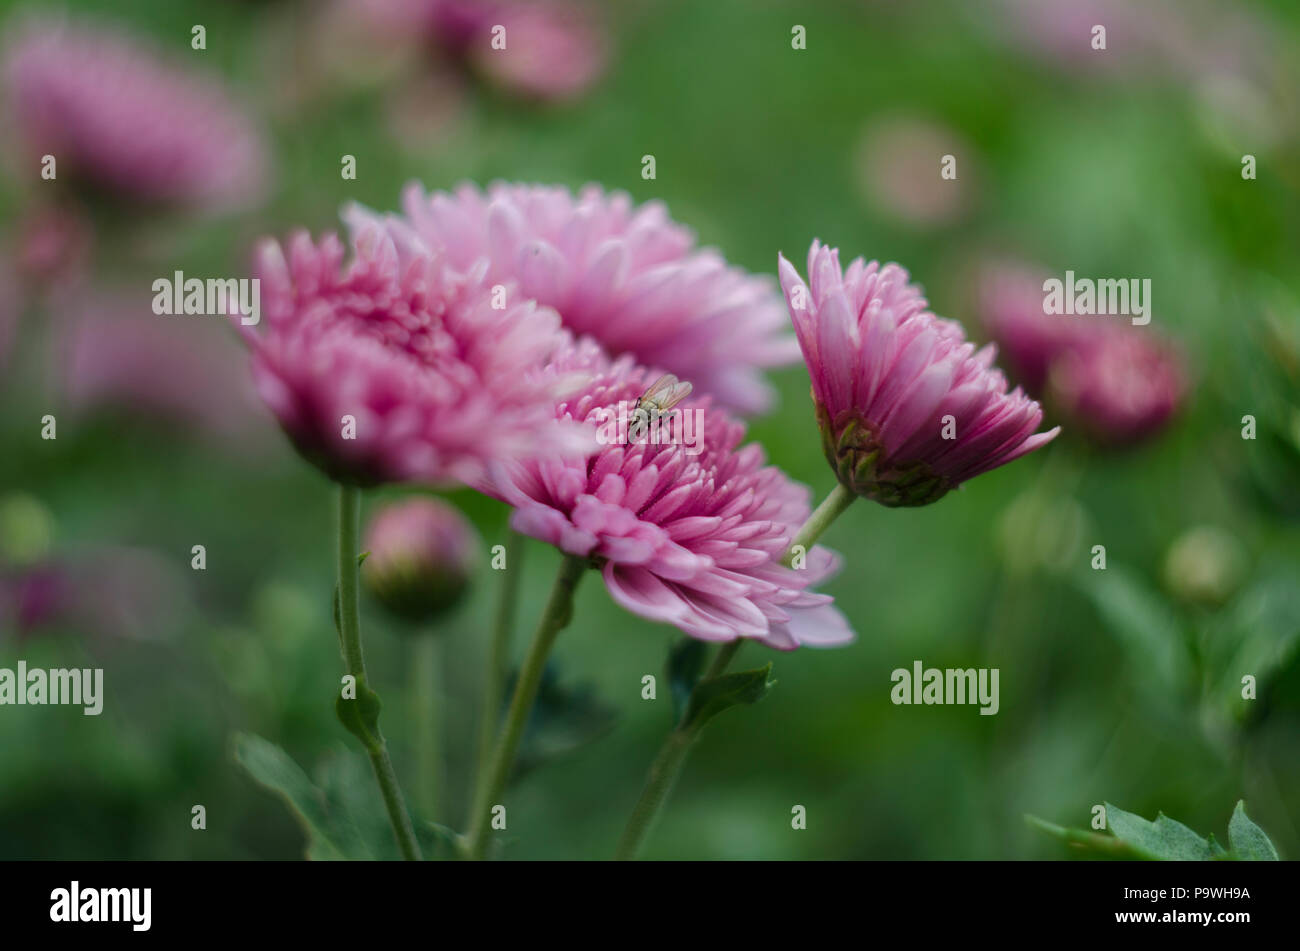 Beautiful Flowers Macro Abstract Art Background With A Soft Focus